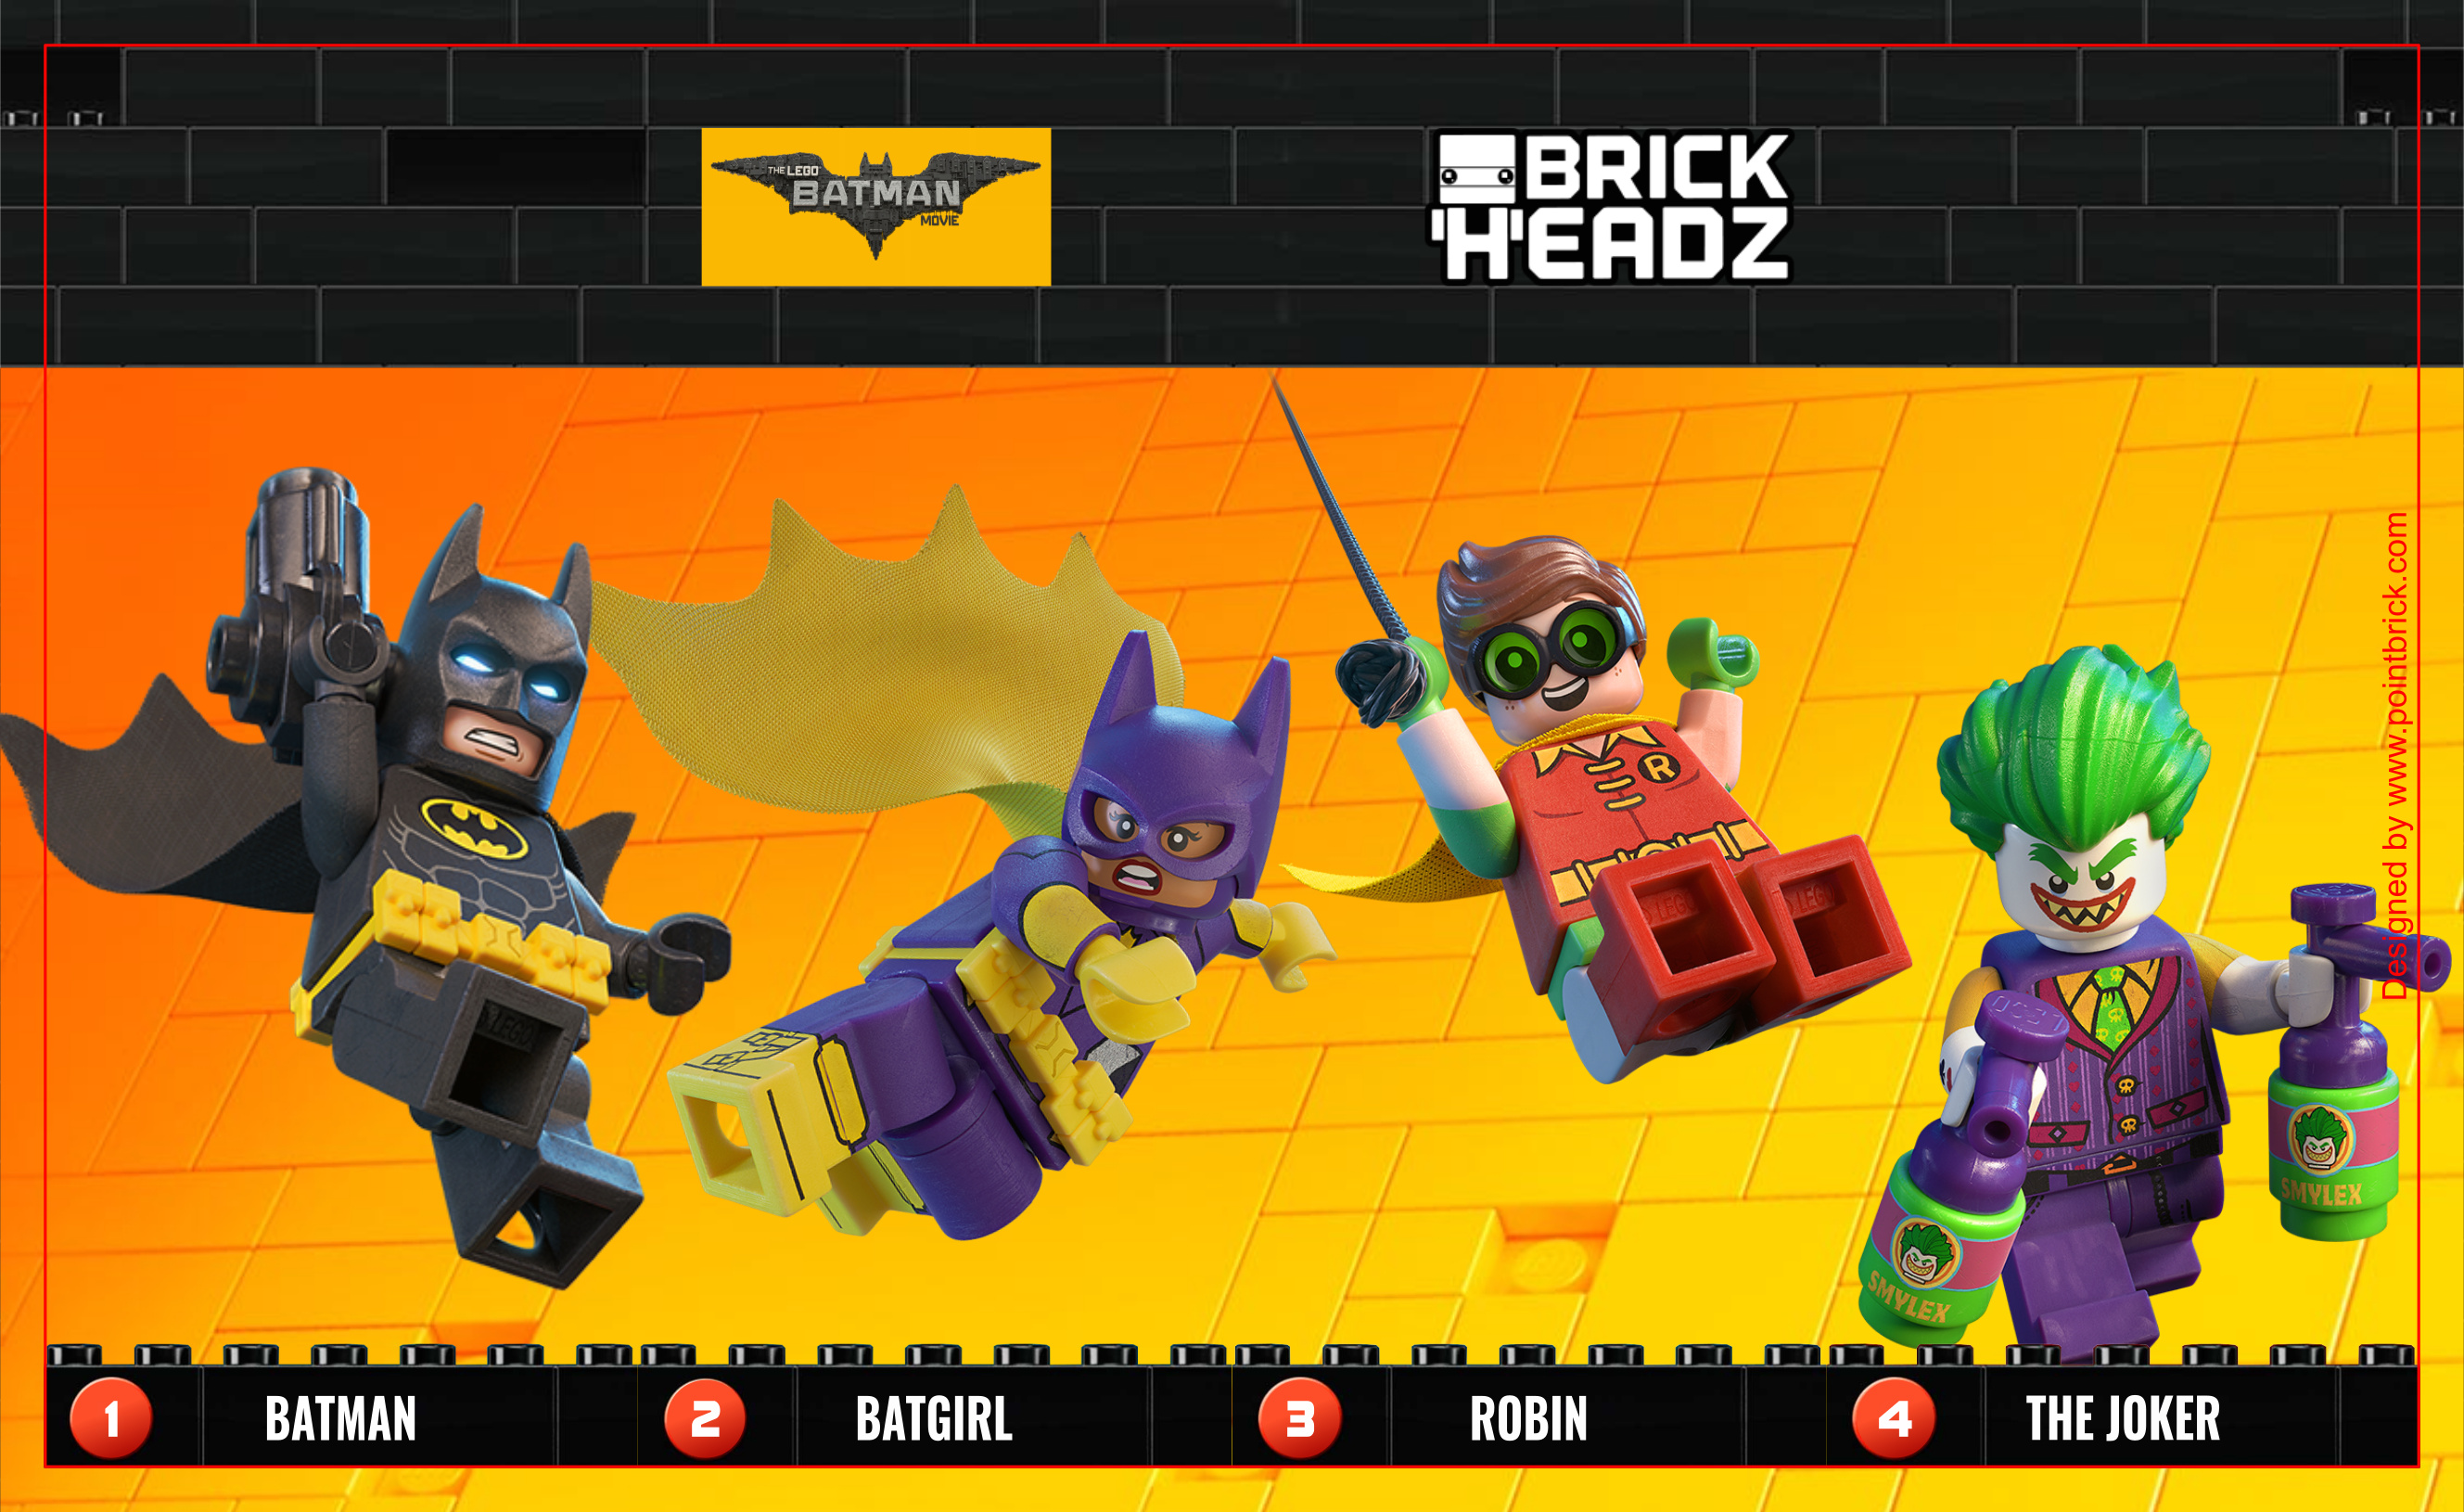 LEGO BrickHeadz Batman Movie - Background 130mm - Clicca sull'immagine per scaricarla gratuitamente!